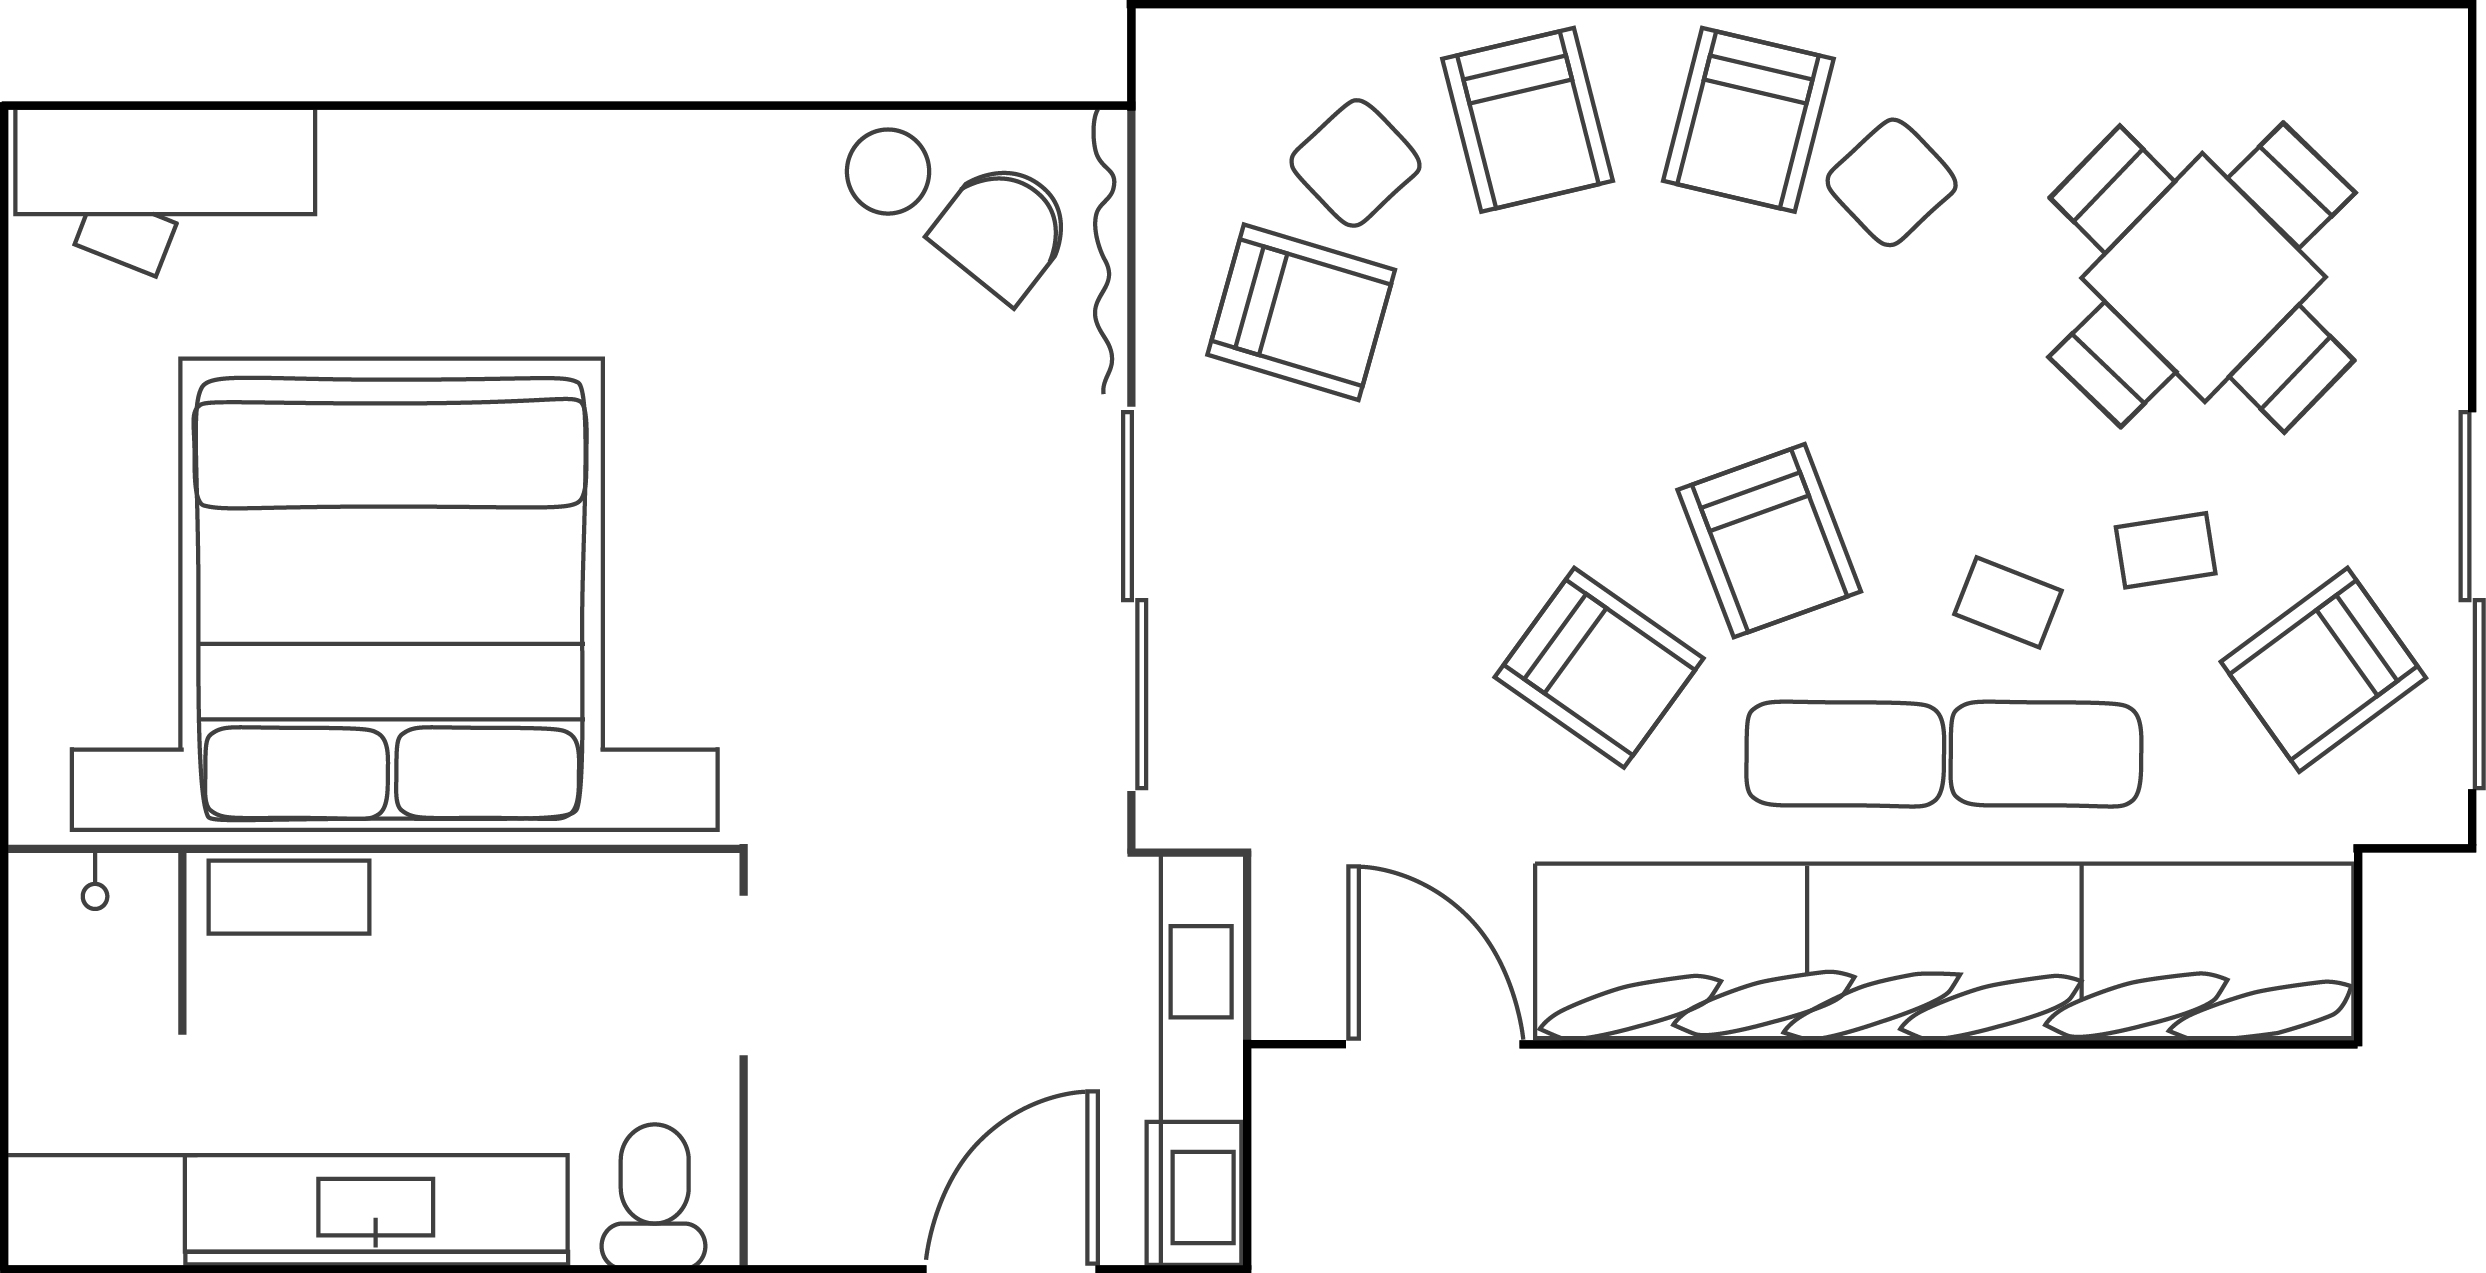 Floor Plan of Ocean Suite Room